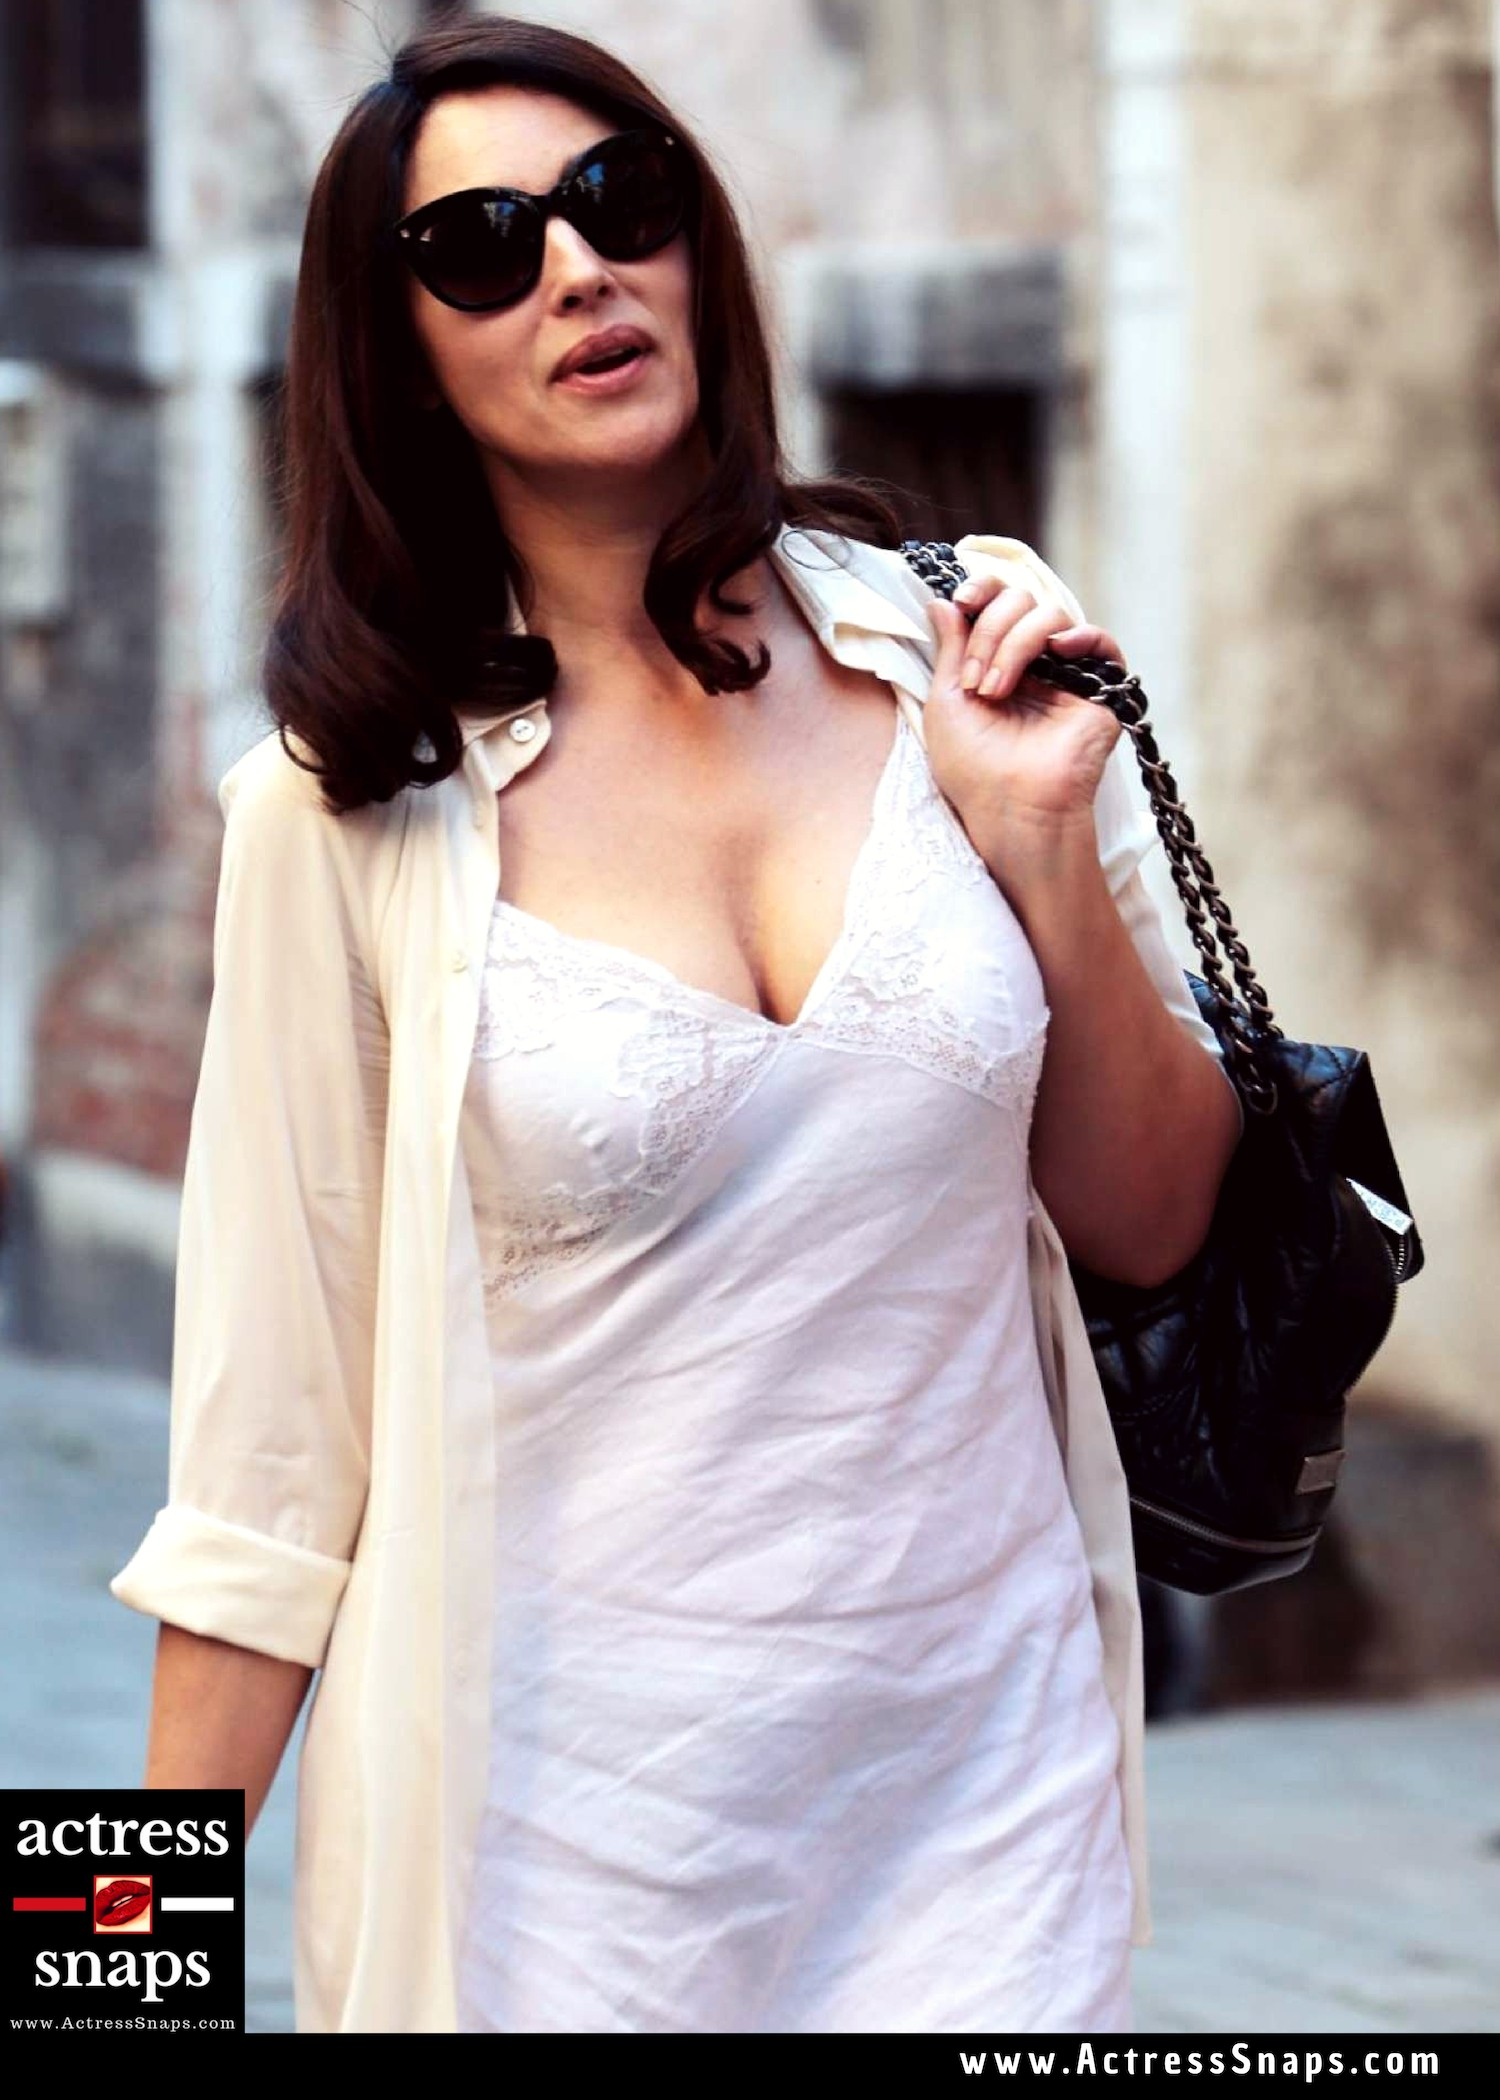 Sexy Monica Bellucci Pictures in White - Sexy Actress Pictures | Hot Actress Pictures - ActressSnaps.com